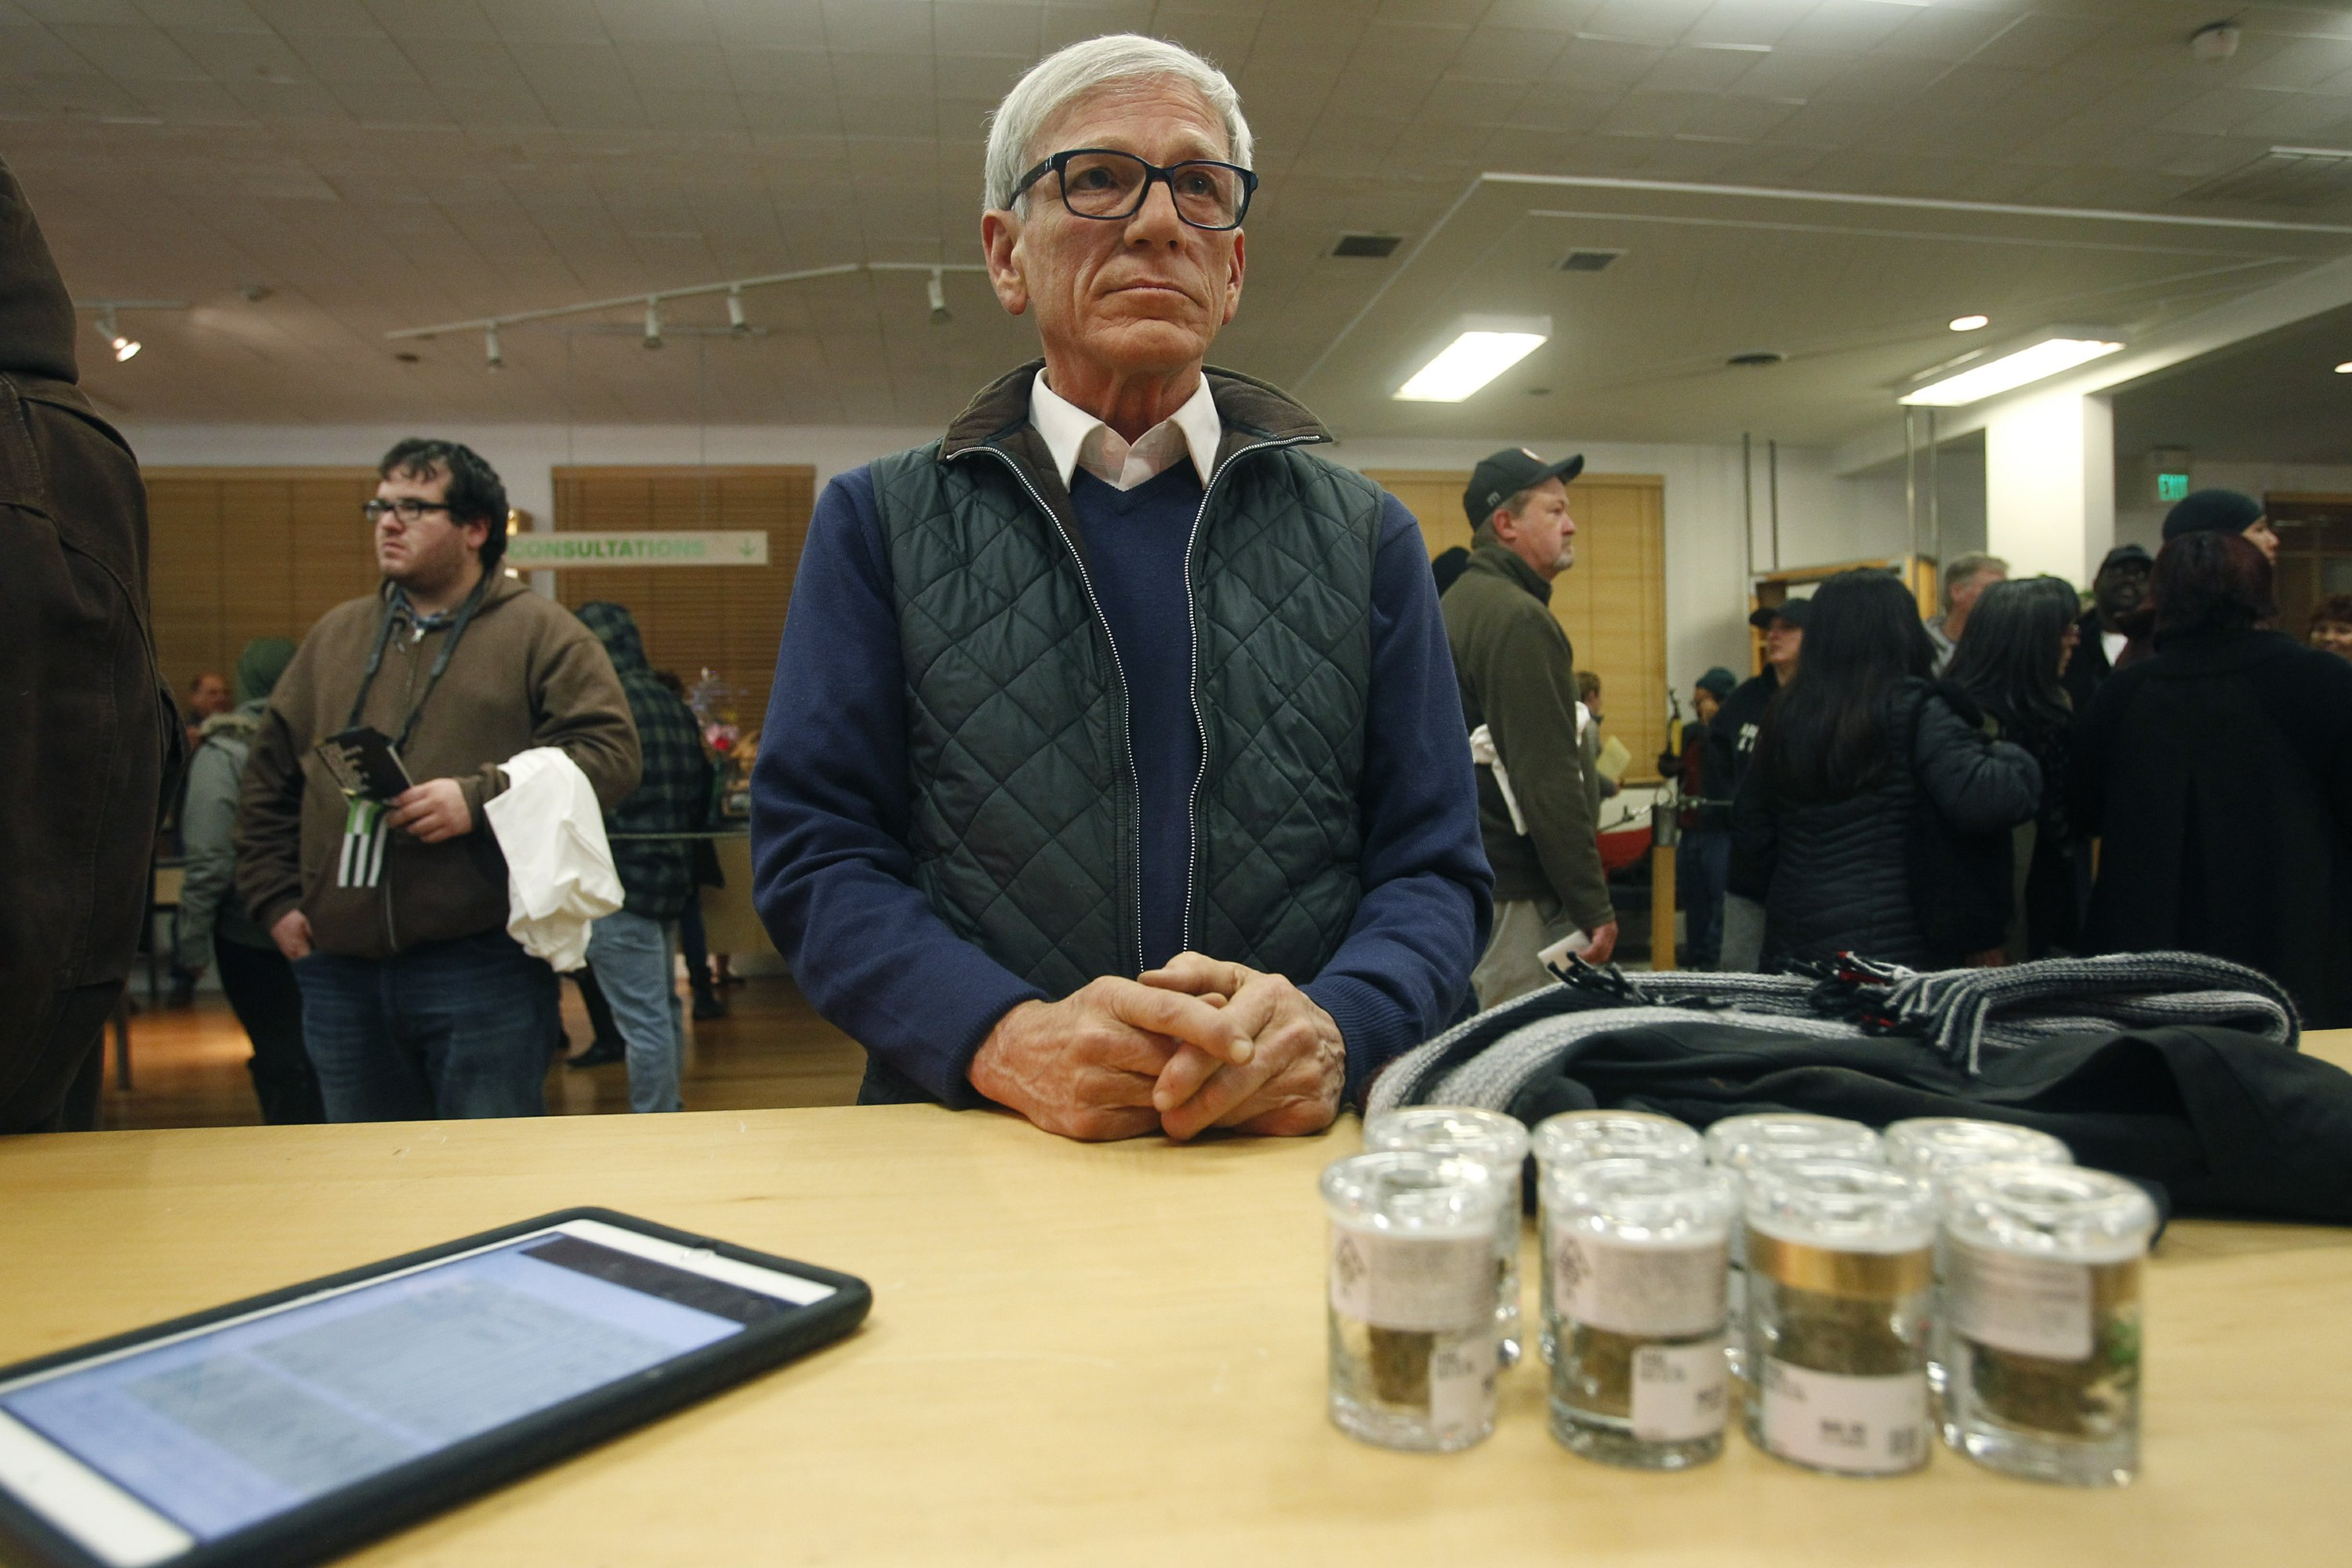 The Latest: 40-minute wait for newly legal California pot